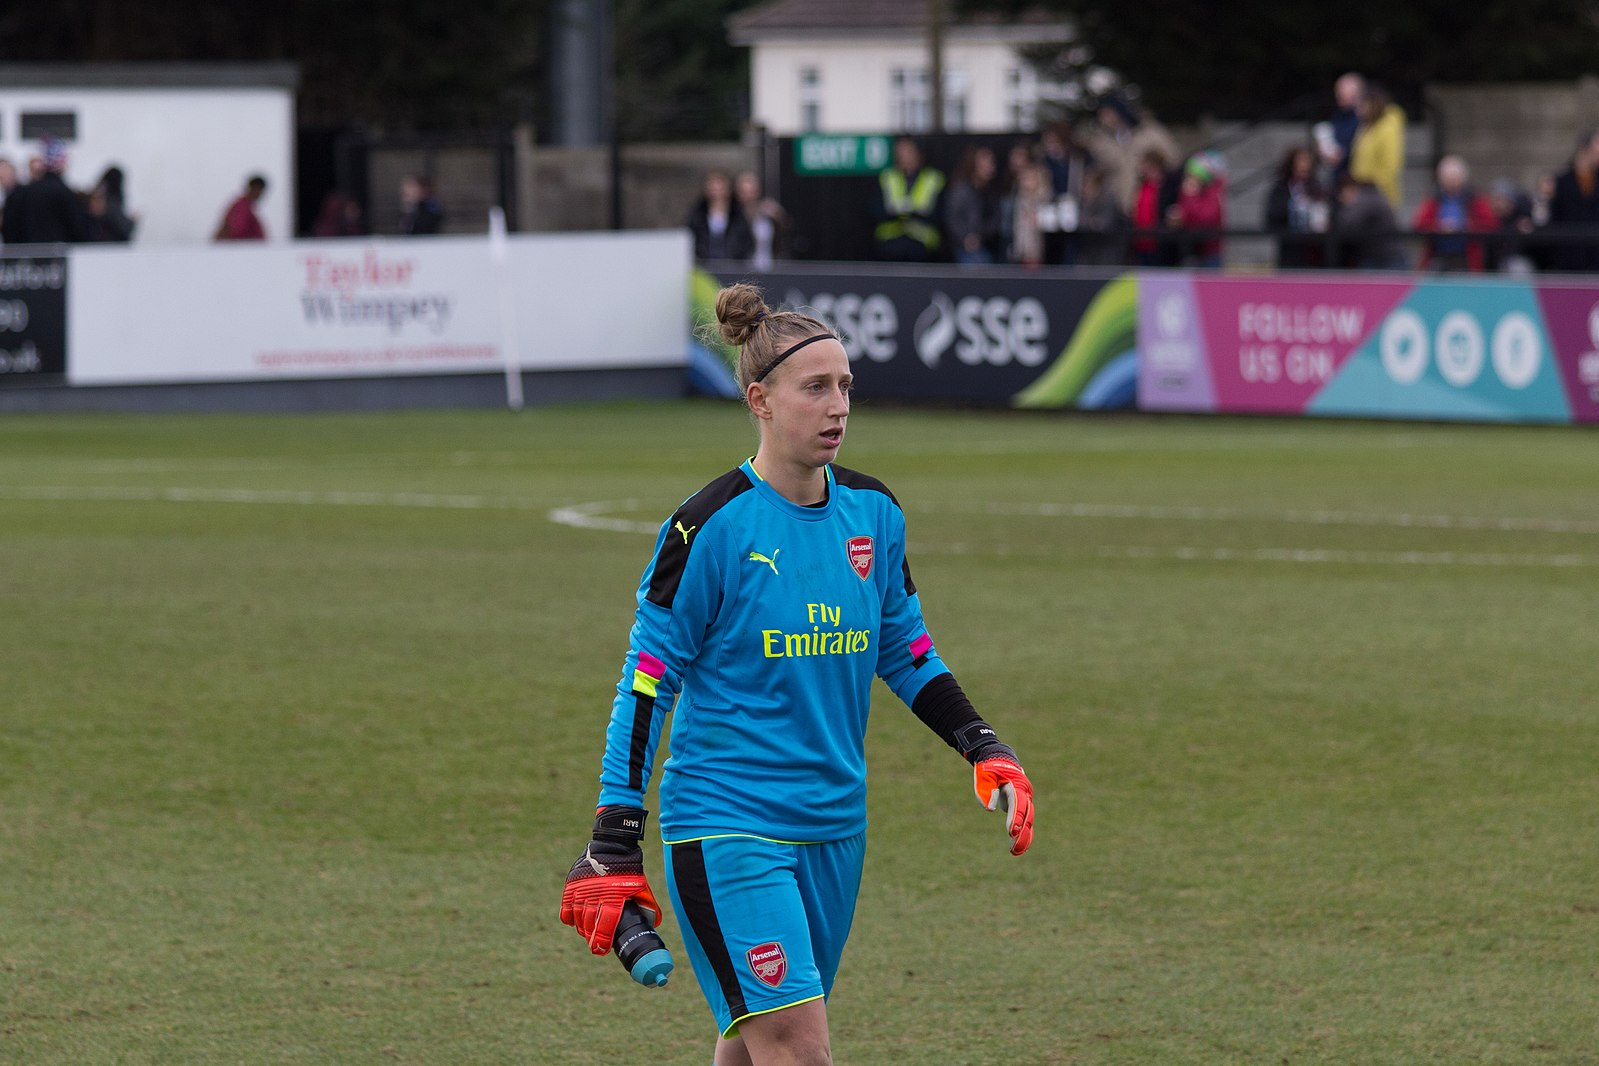 Sari Van Veenendaal, ©Katie Chan, https://commons.wikimedia.org/wiki/File:Arsenal_LFC_v_Kelly_Smith_All-Stars_XI_(136).jpg